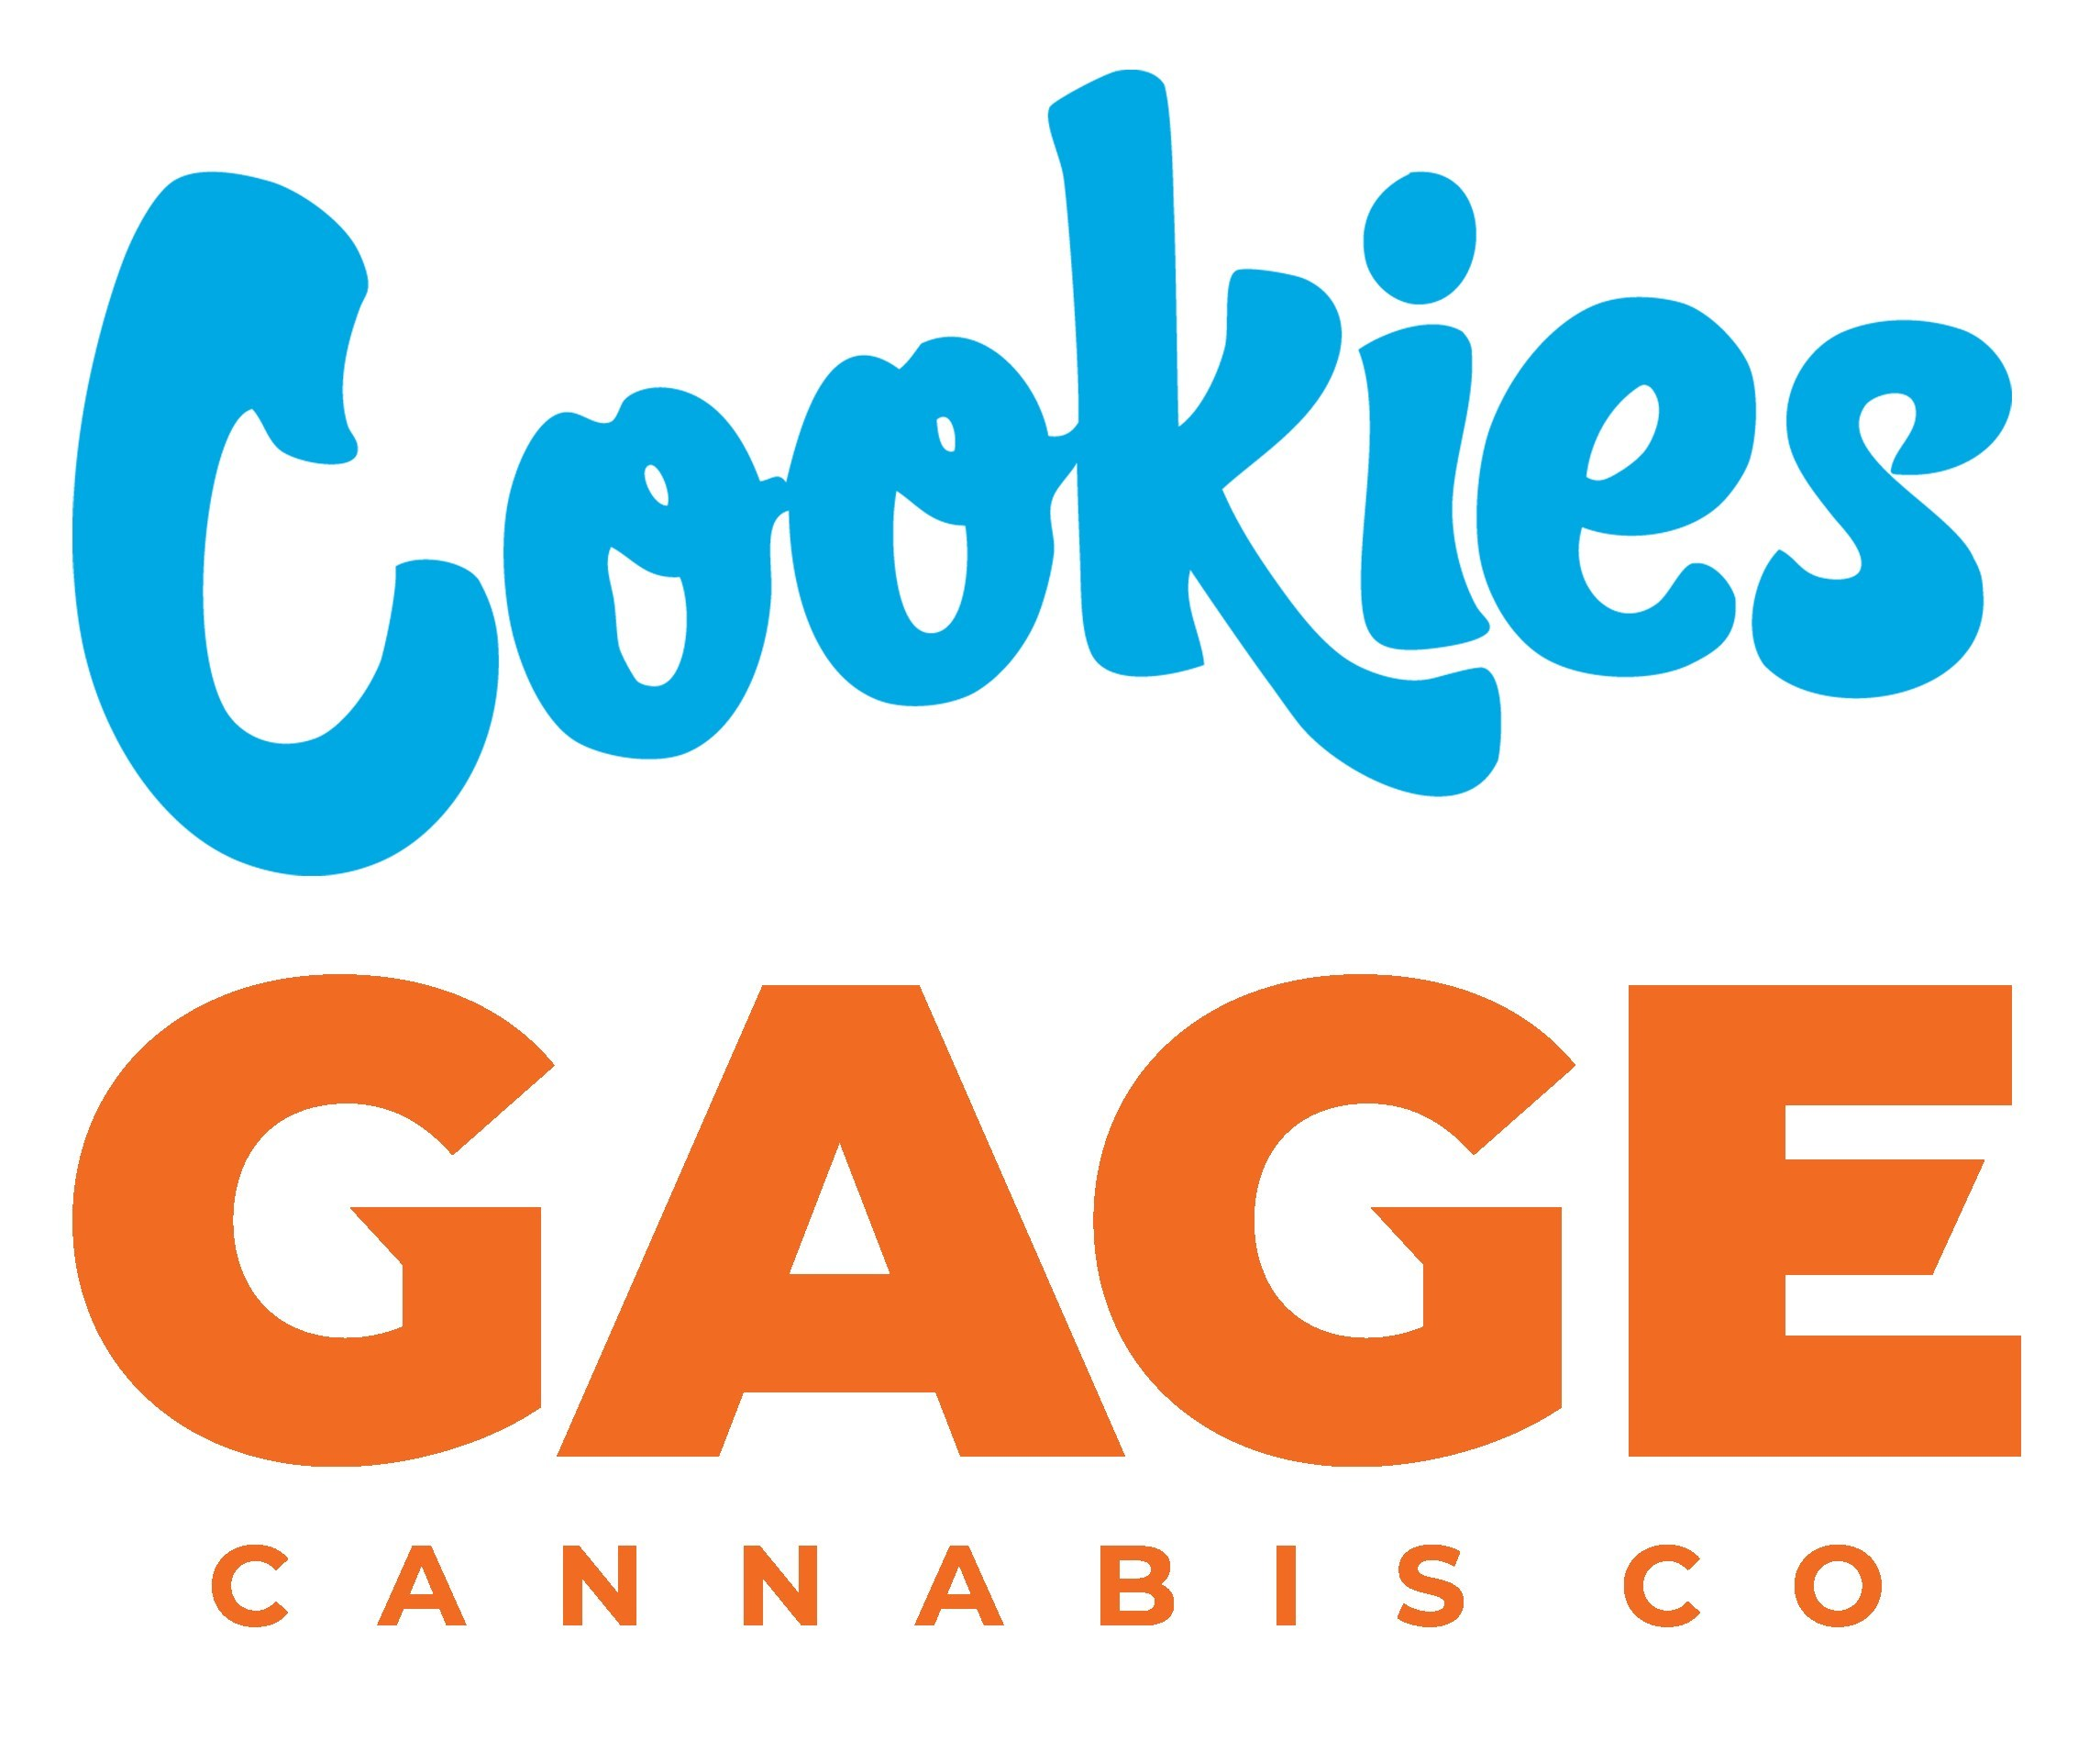 california based lifestyle cannabis brand cookies announces partnership with gage cannabis co california based lifestyle cannabis brand cookies announces partnership with gage cannabis co